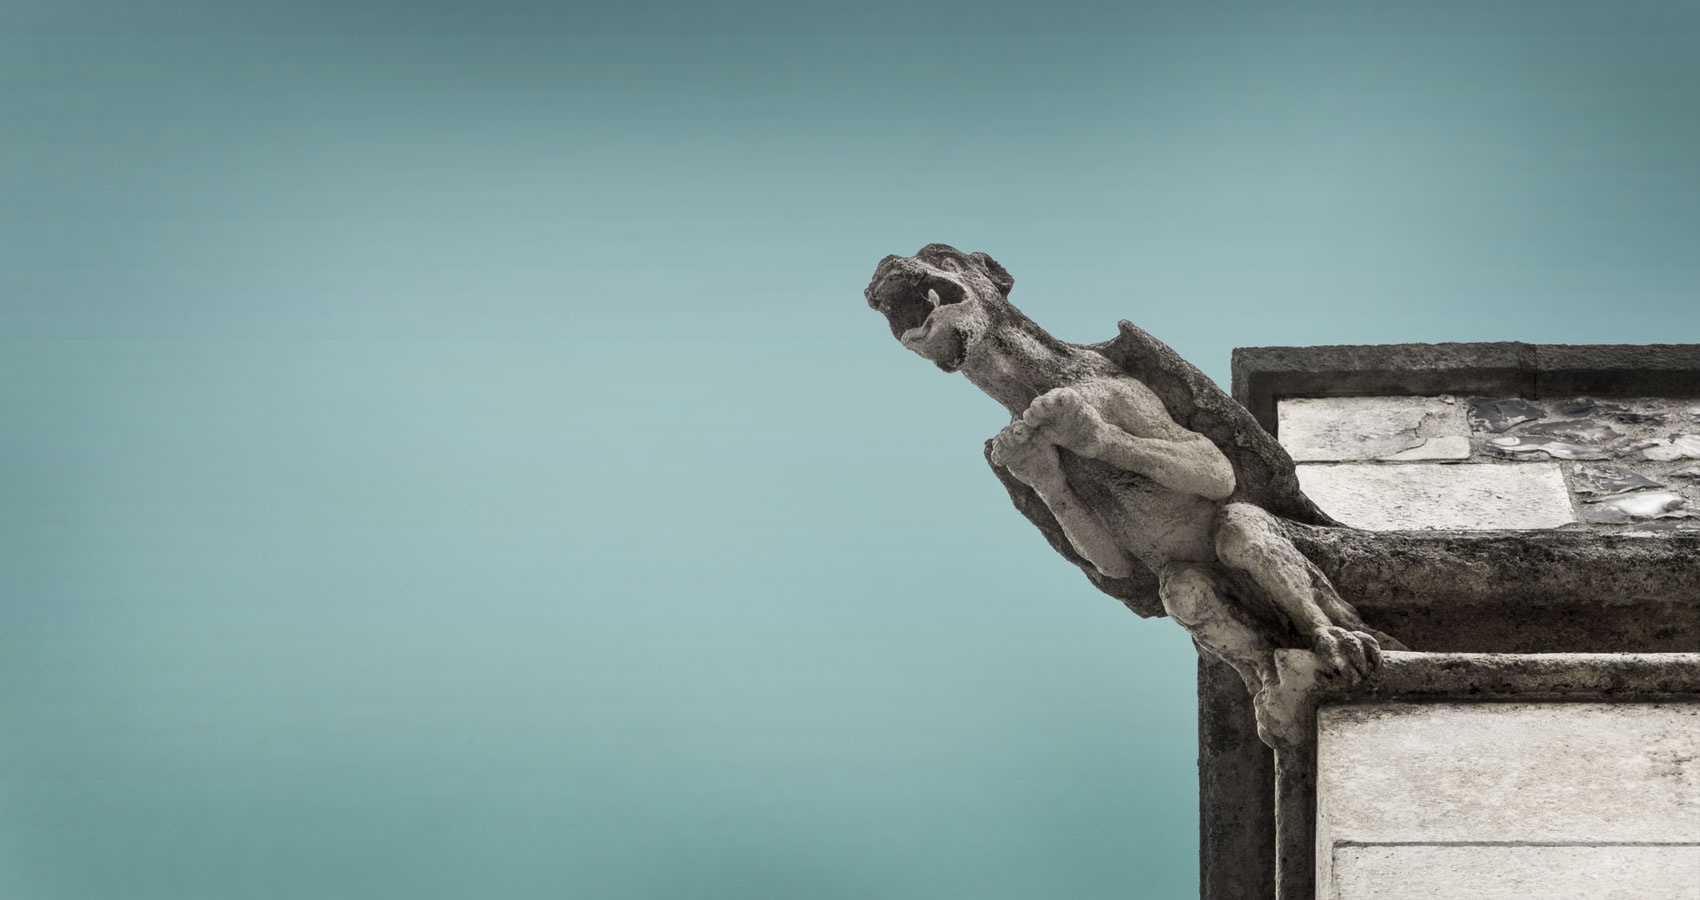 The Gargoyle Yawns, a prose by Judge Burdon at Spillwords.com